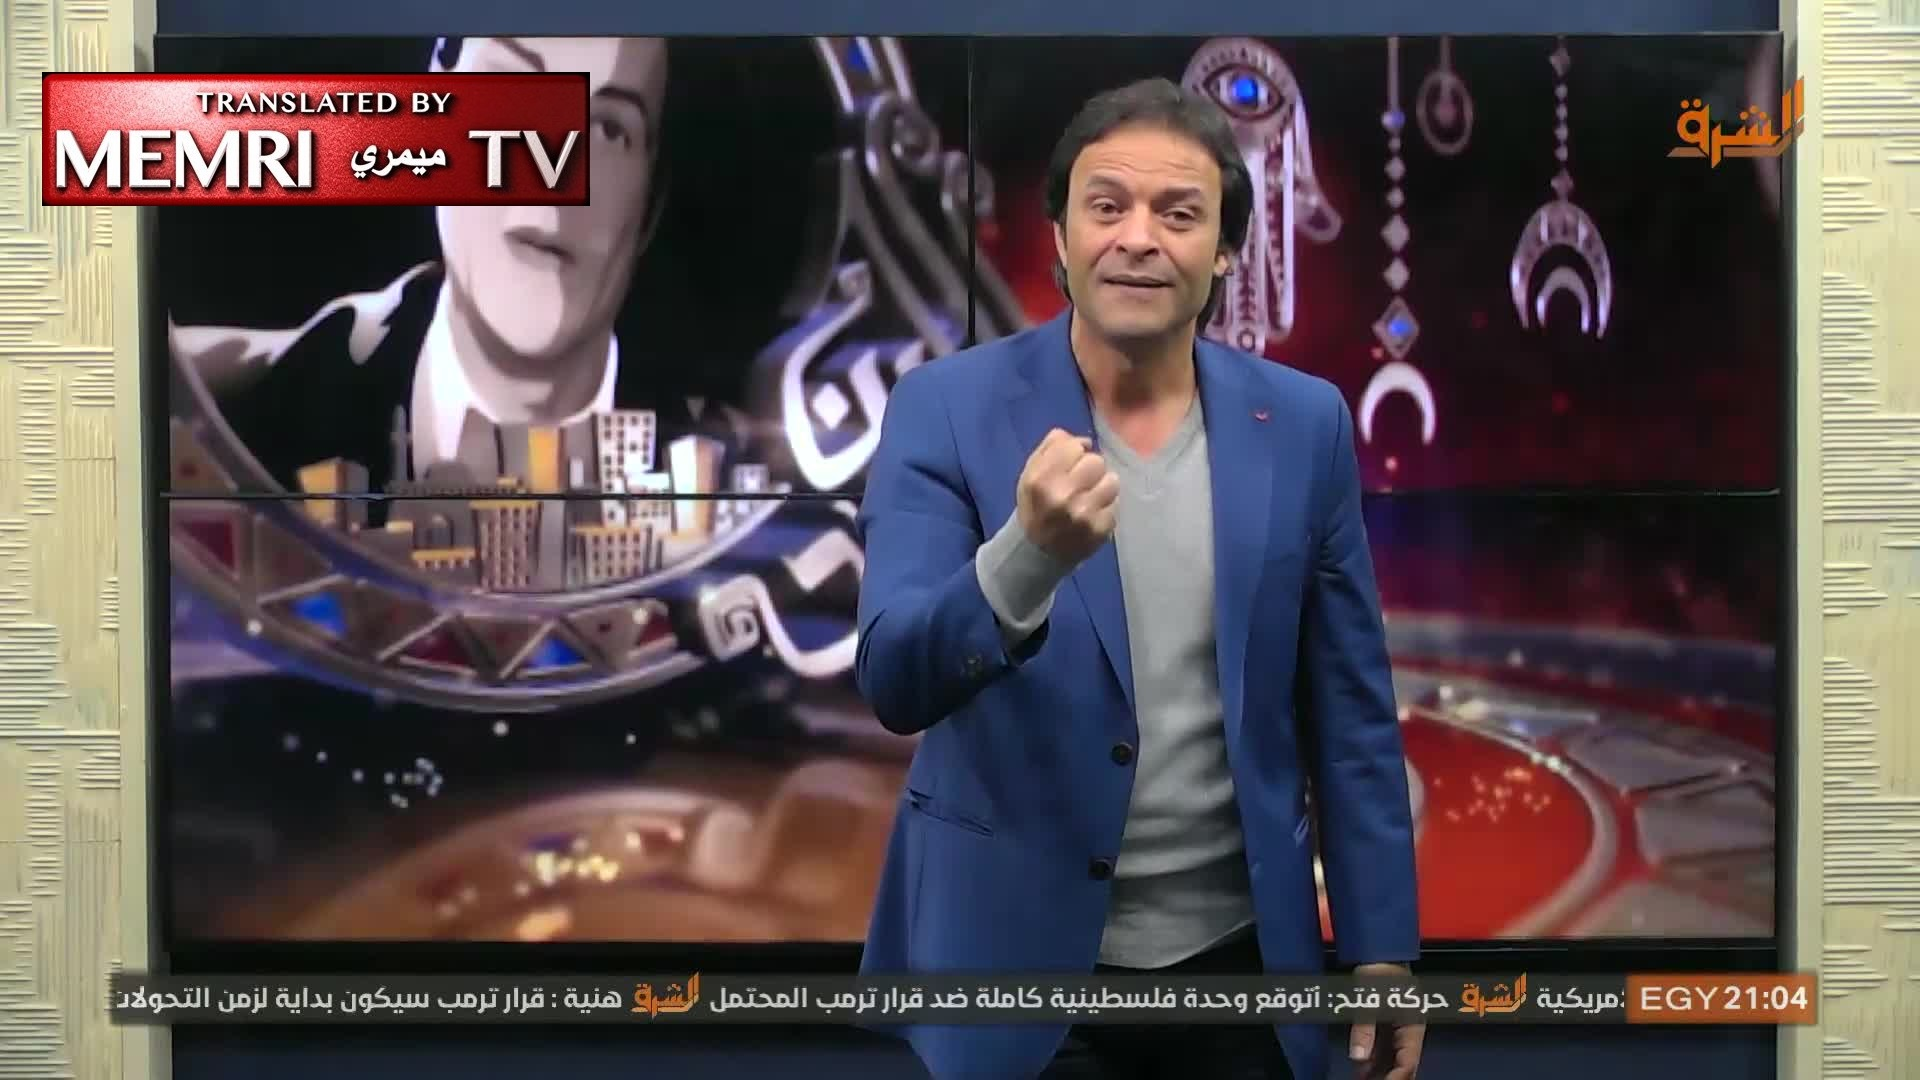 "Hisham Abdallah, Egyptian TV Host on Muslim Brotherhood Channel, calls on Muslims to Rage, Set Jerusalem ""on Fire"" following Trump's Declaration"